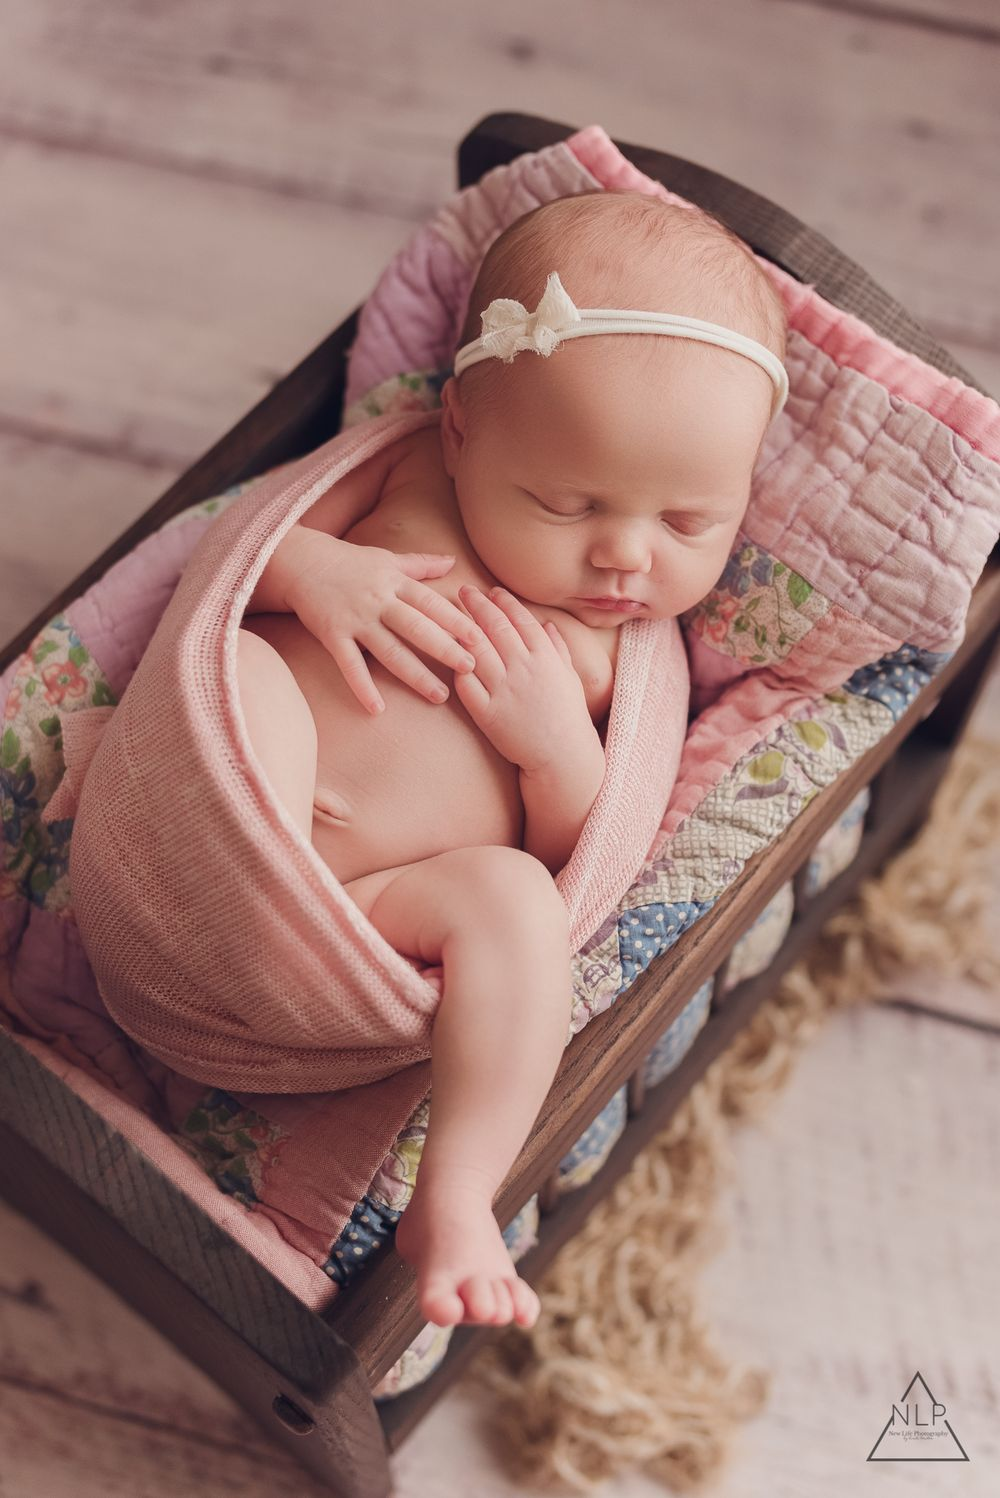 baby girl on a pink quilt, in a prop bed